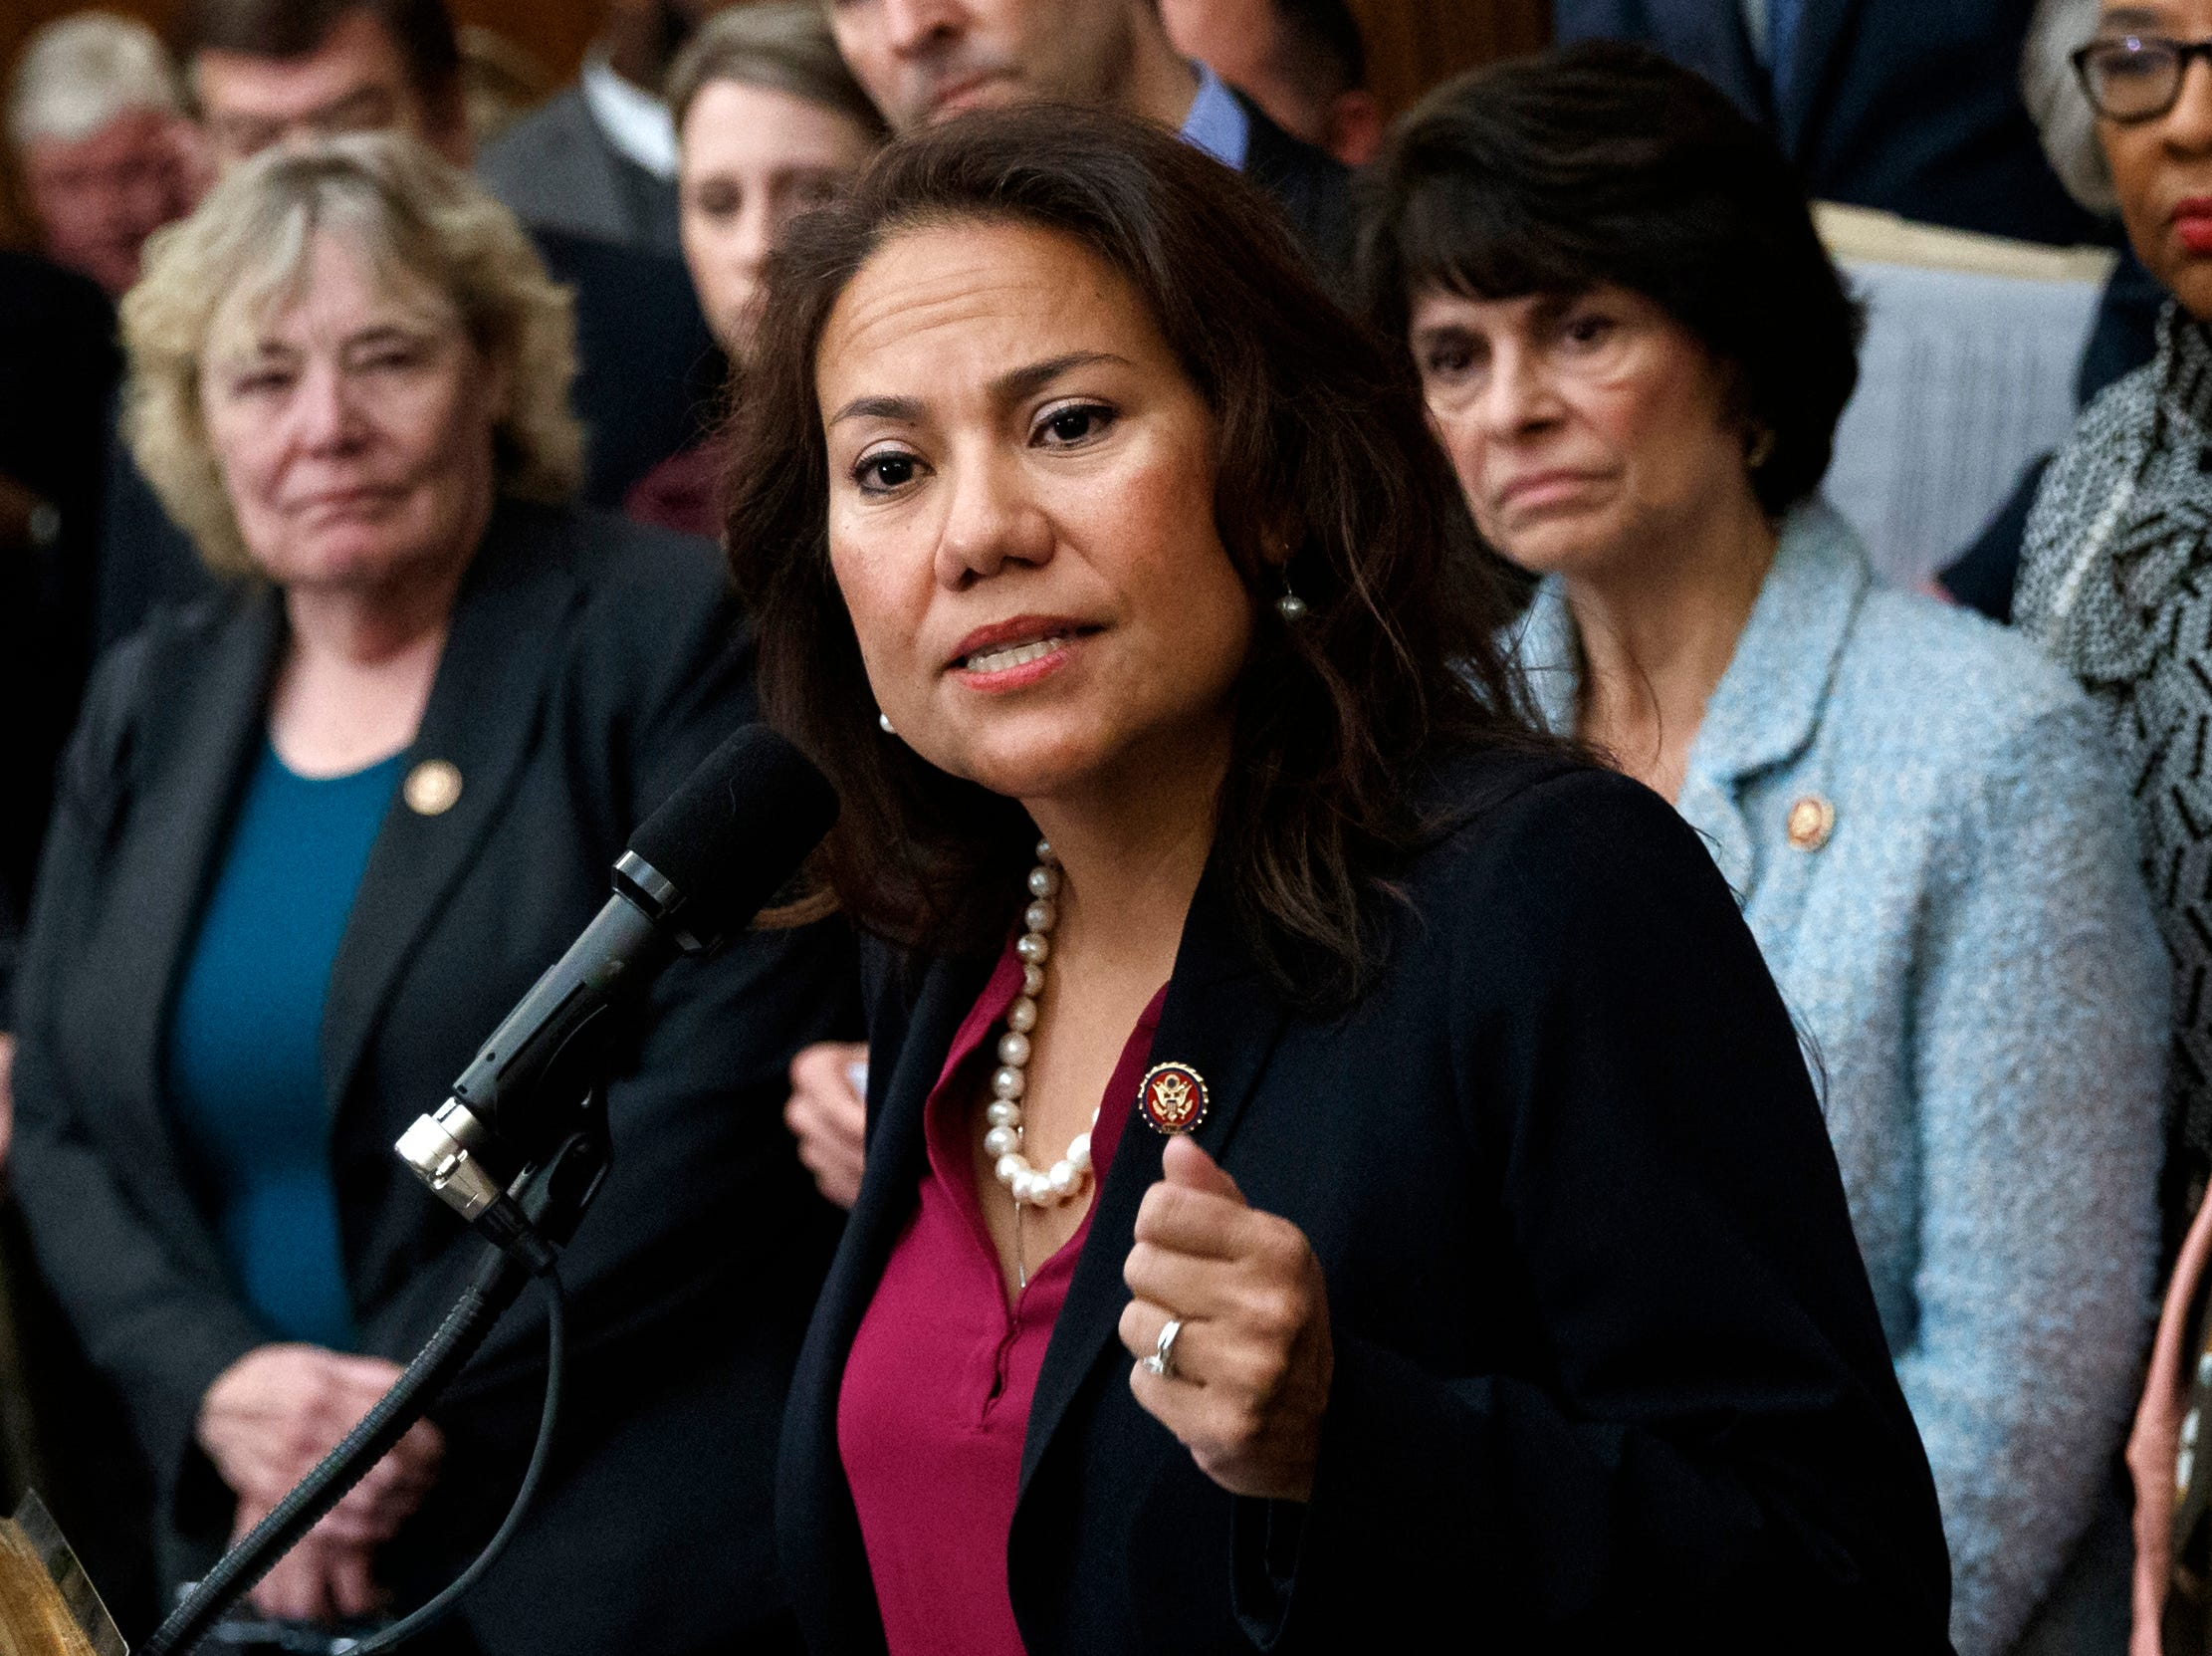 U.S. Rep. Veronica Escobar, D-El Paso, speaks during a news conference on Capitol Hill in Washington on Friday, Jan. 4, 2019, about the introduction of H.R. 1 — For the People Act.